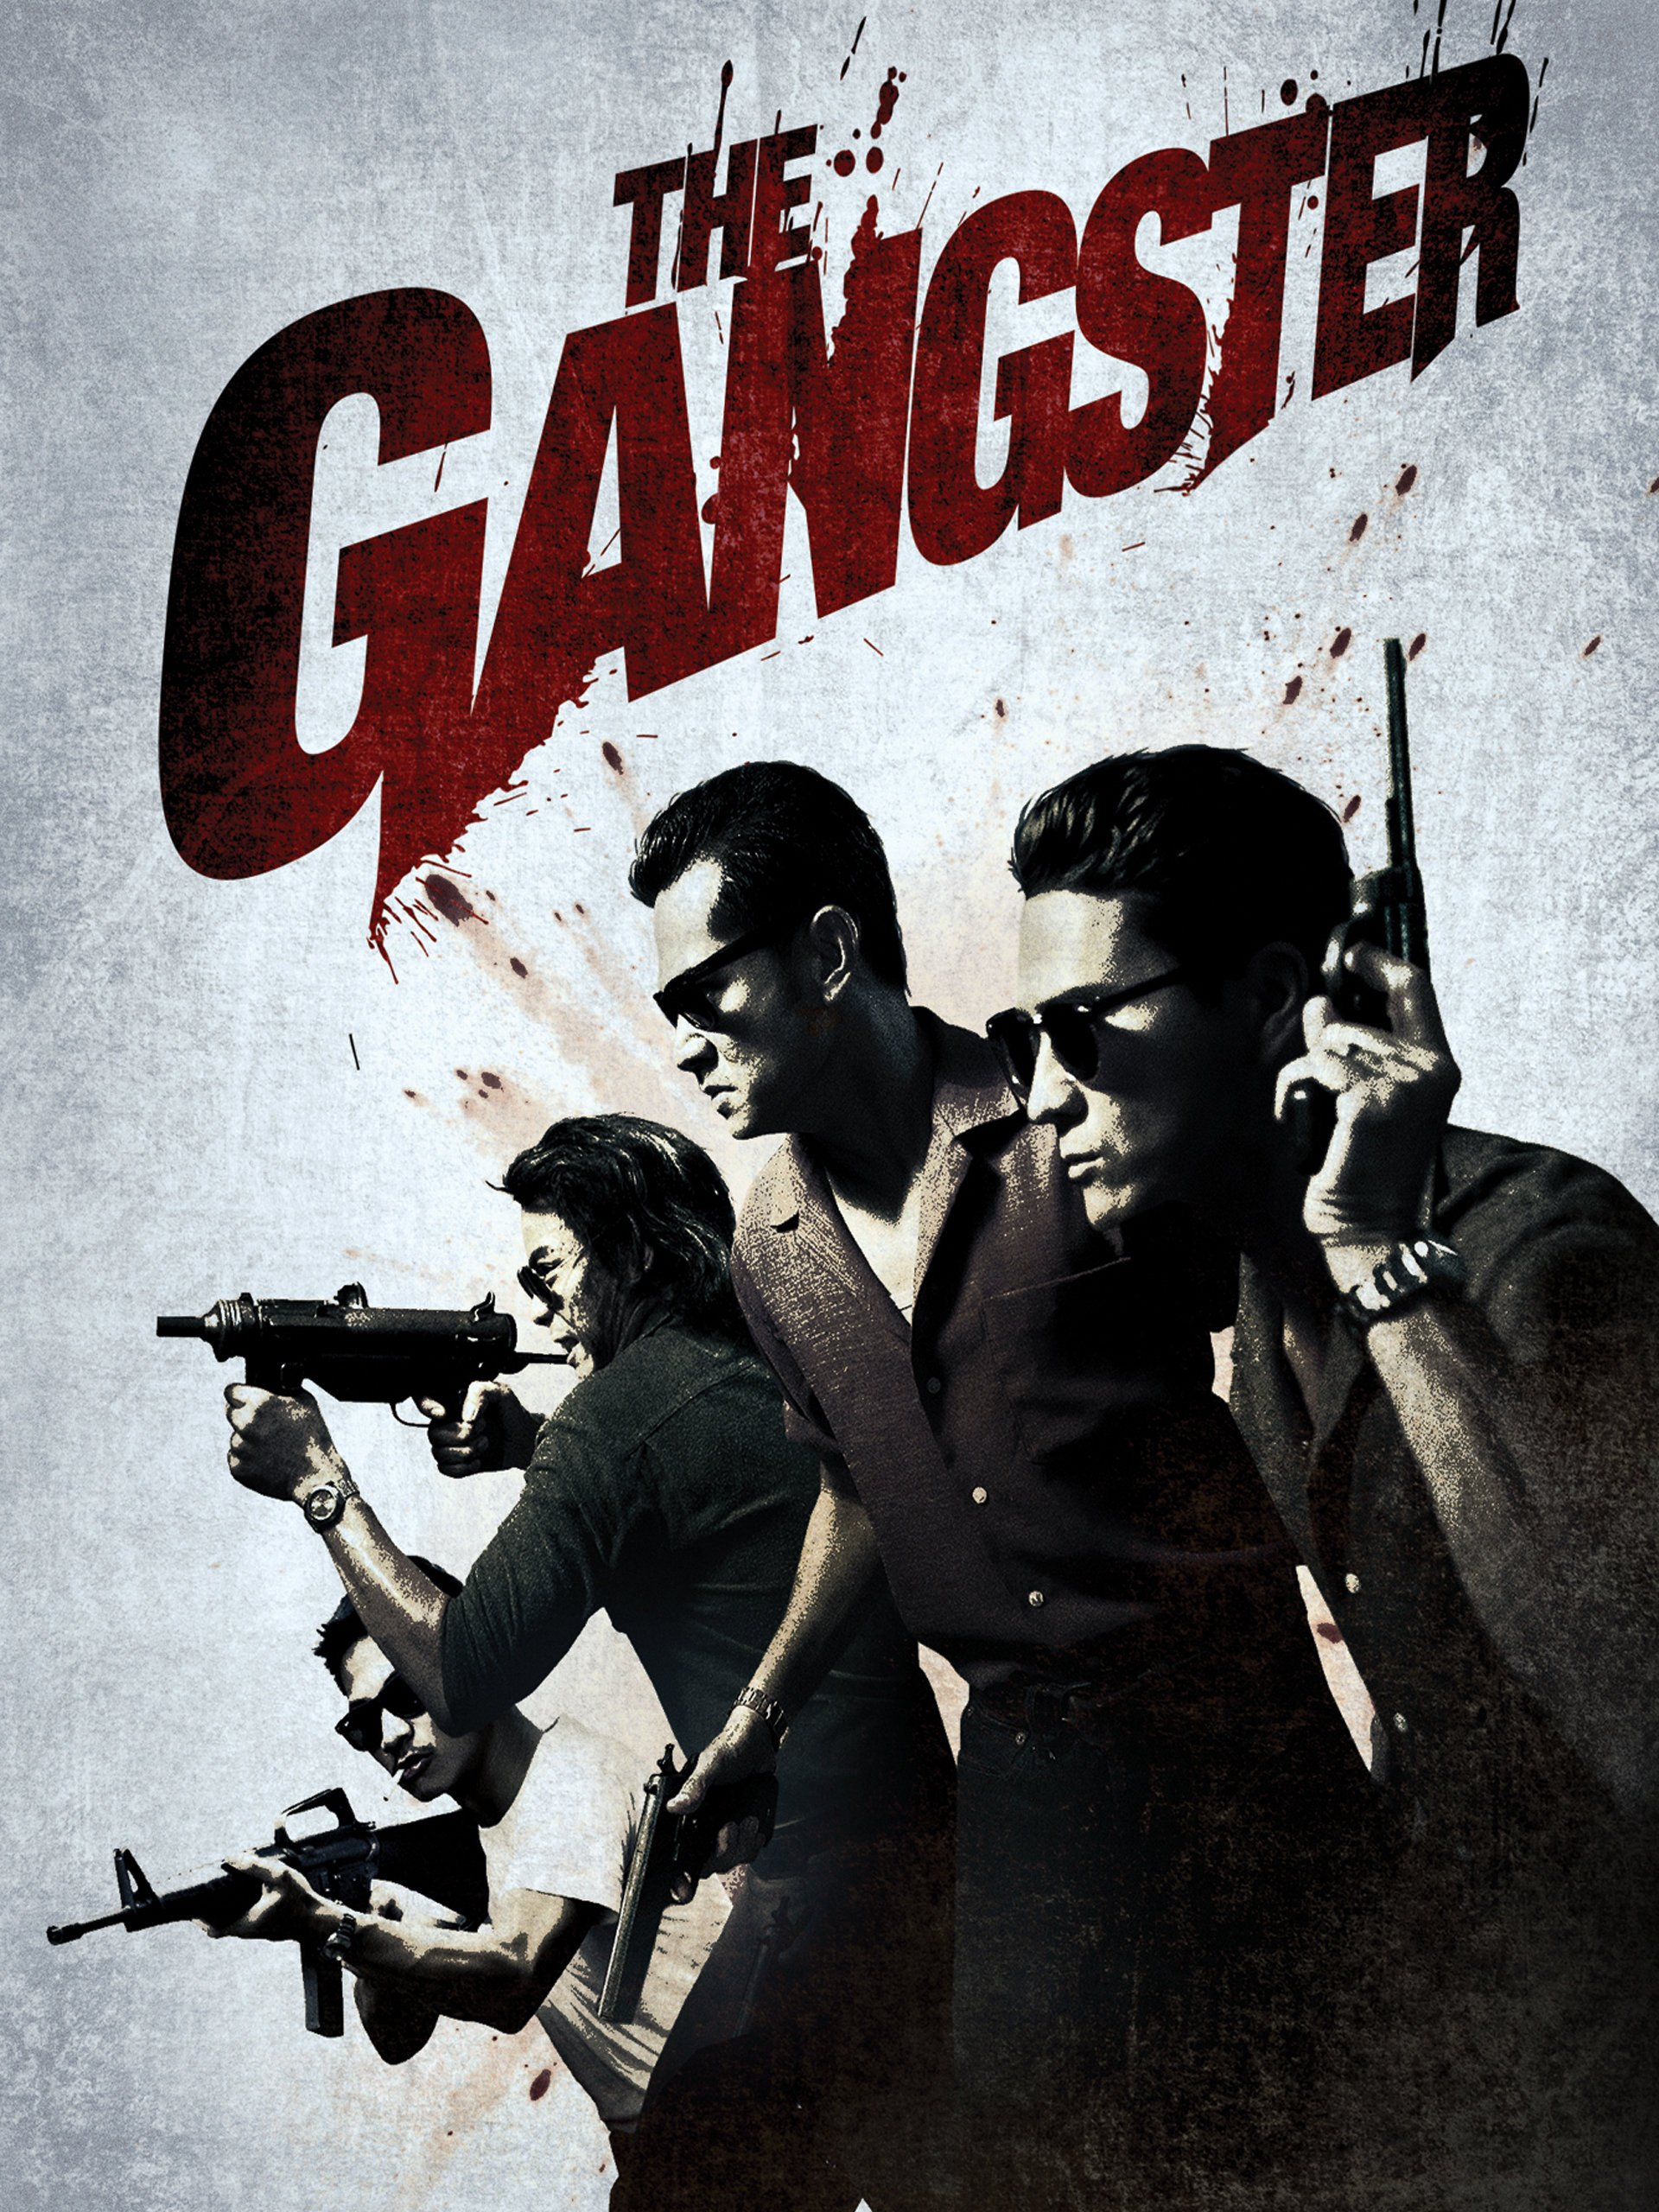 The Gangster by